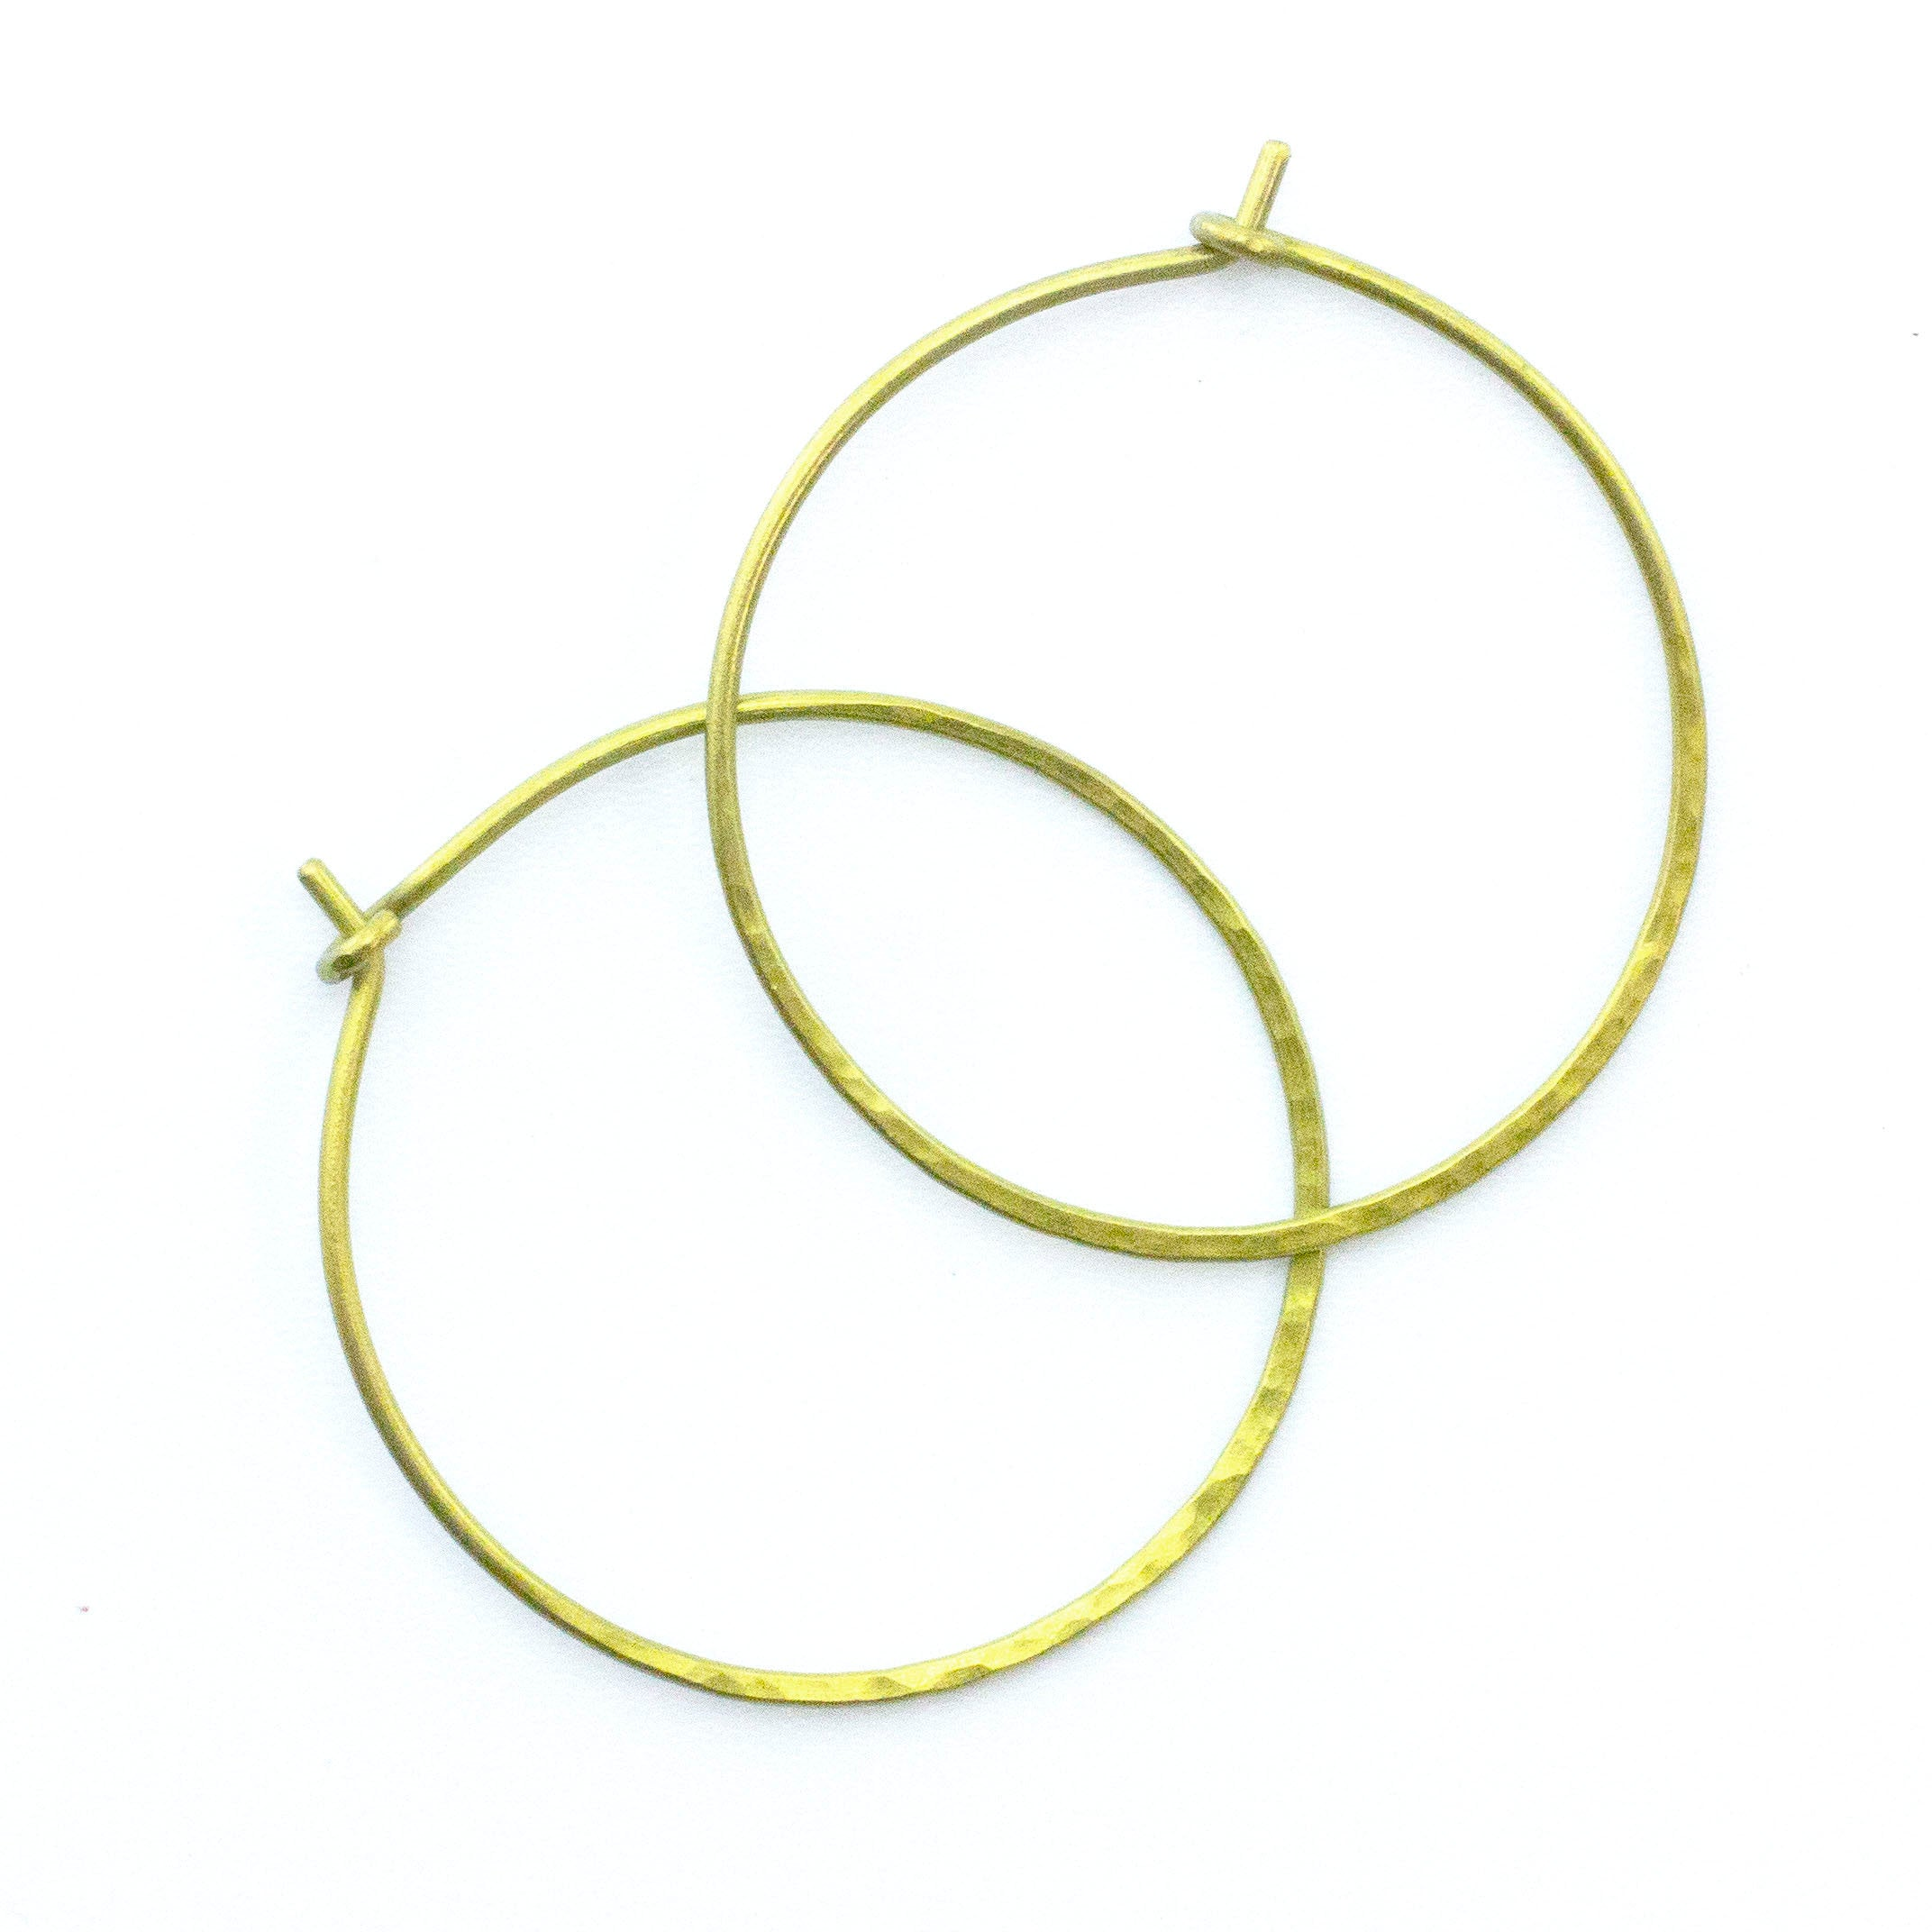 50 GOLD PLATED EAR HOOK WIRES Rich Pale Yellow or Honey GOLD Earwires 18mm Ball